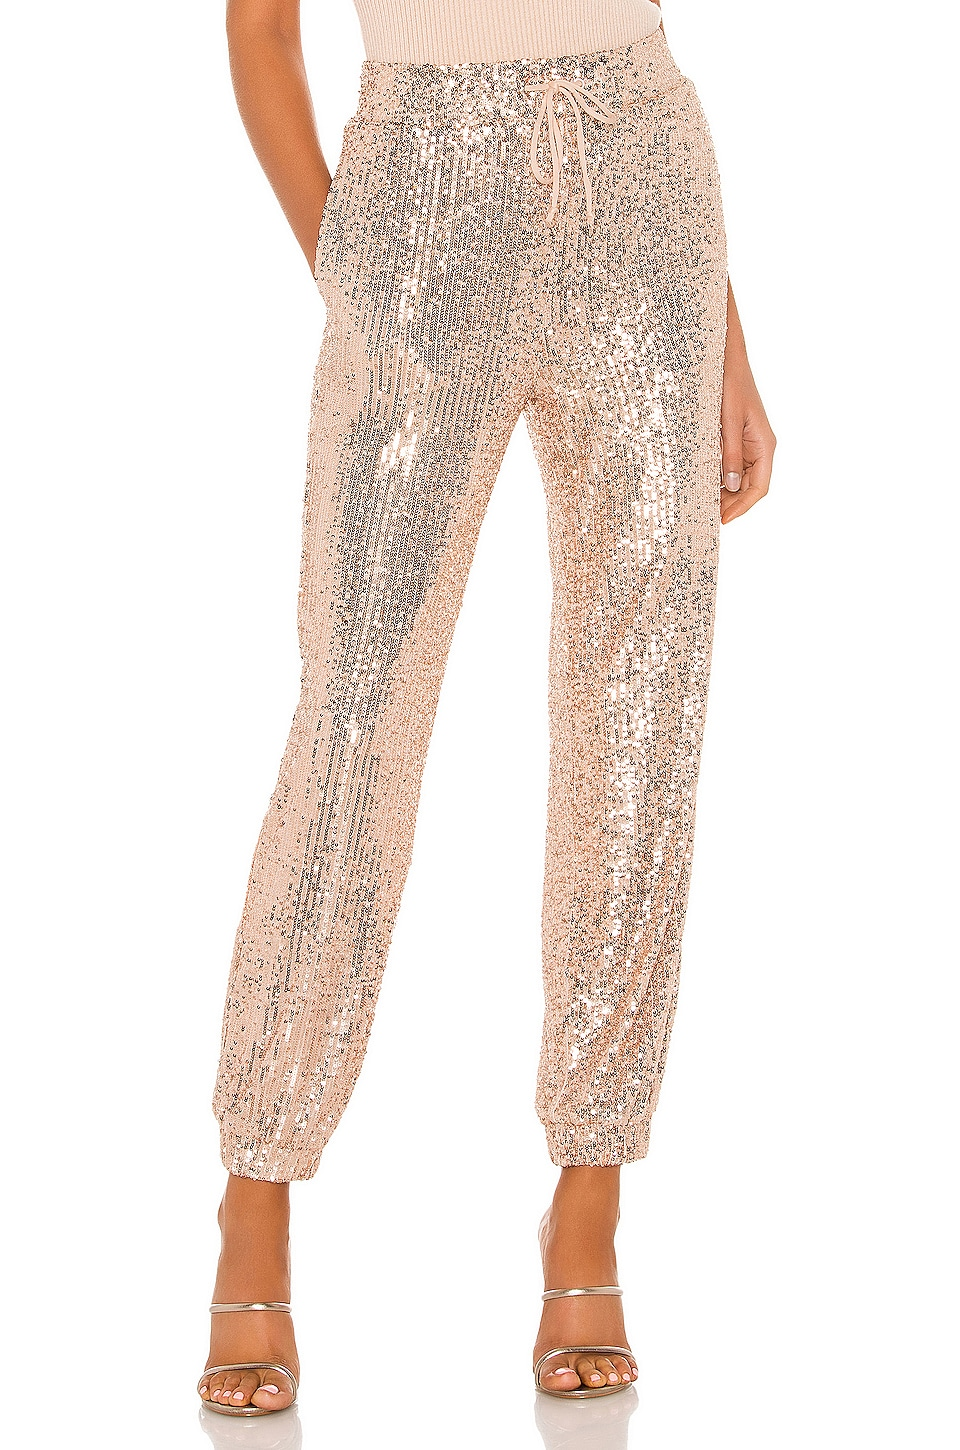 MAJORELLE Cairo Pant in Champagne